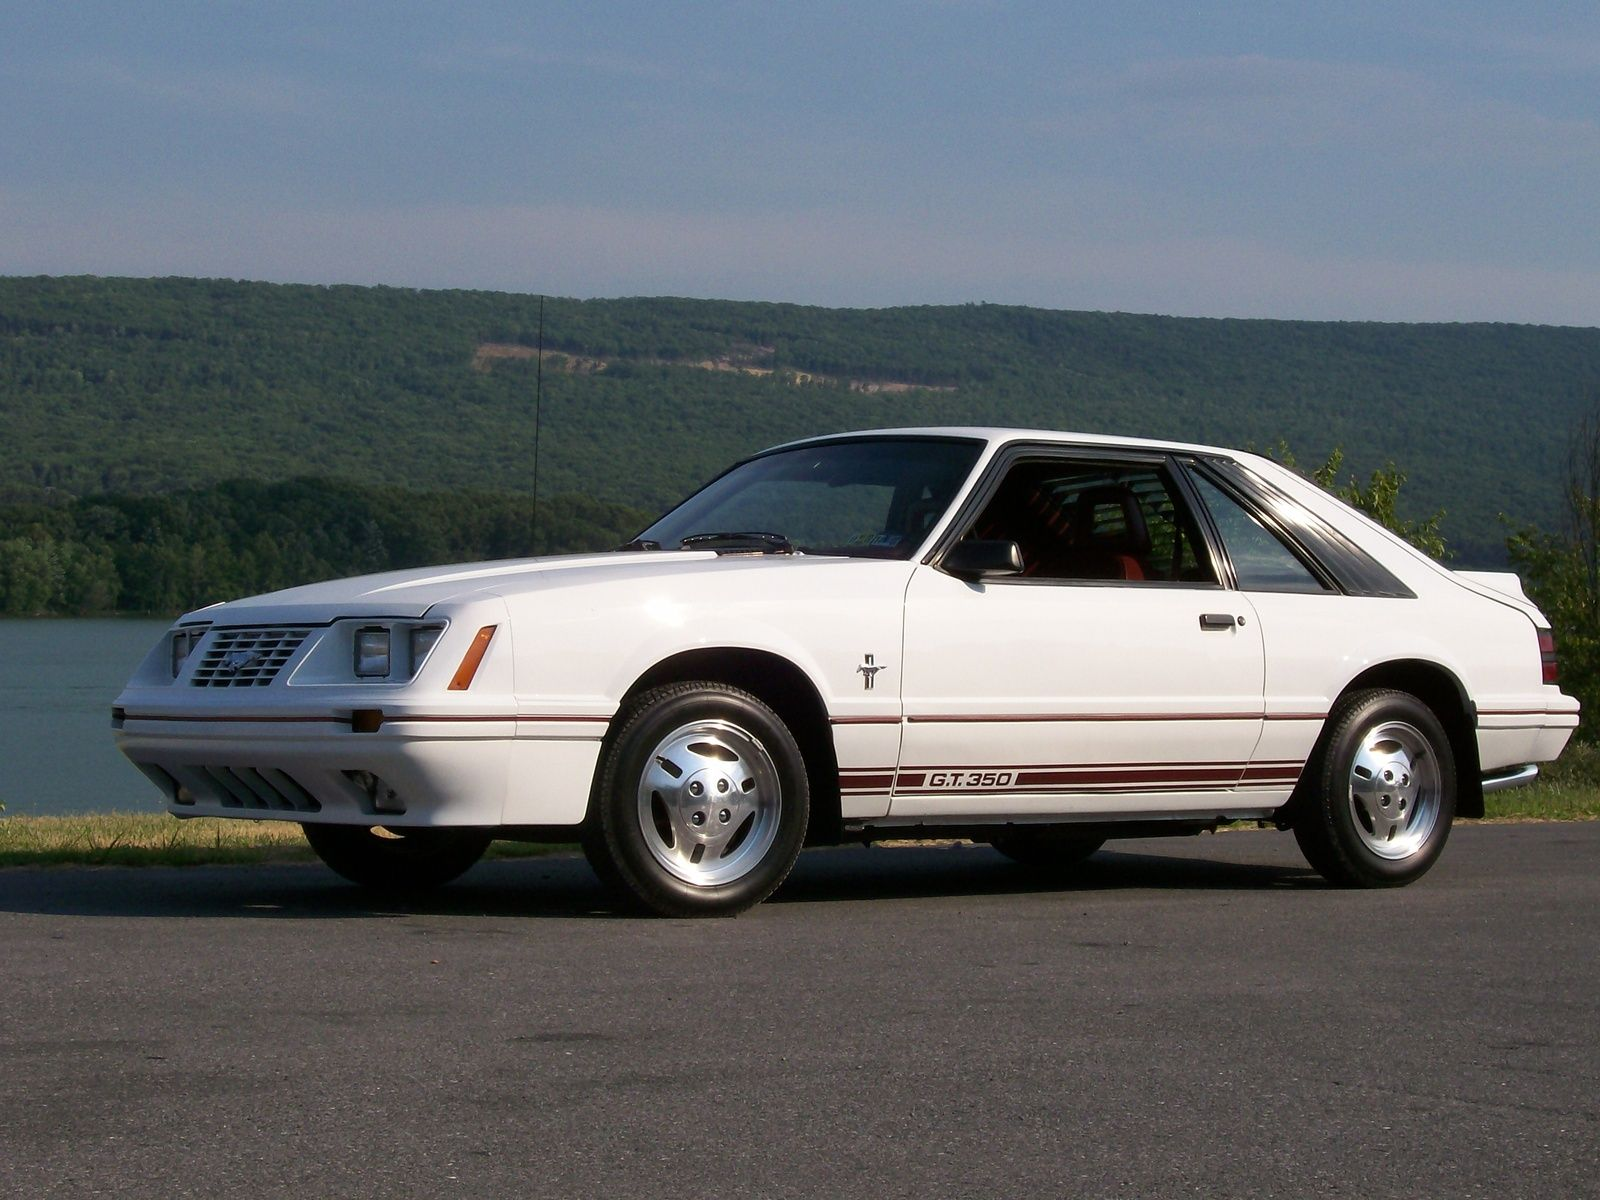 Picture of 1984 ford mustang gt350 exterior - 1984 Ford Mustang Gt350 Ford Mustangs Pinterest Ford Mustang Ford And Hatchbacks